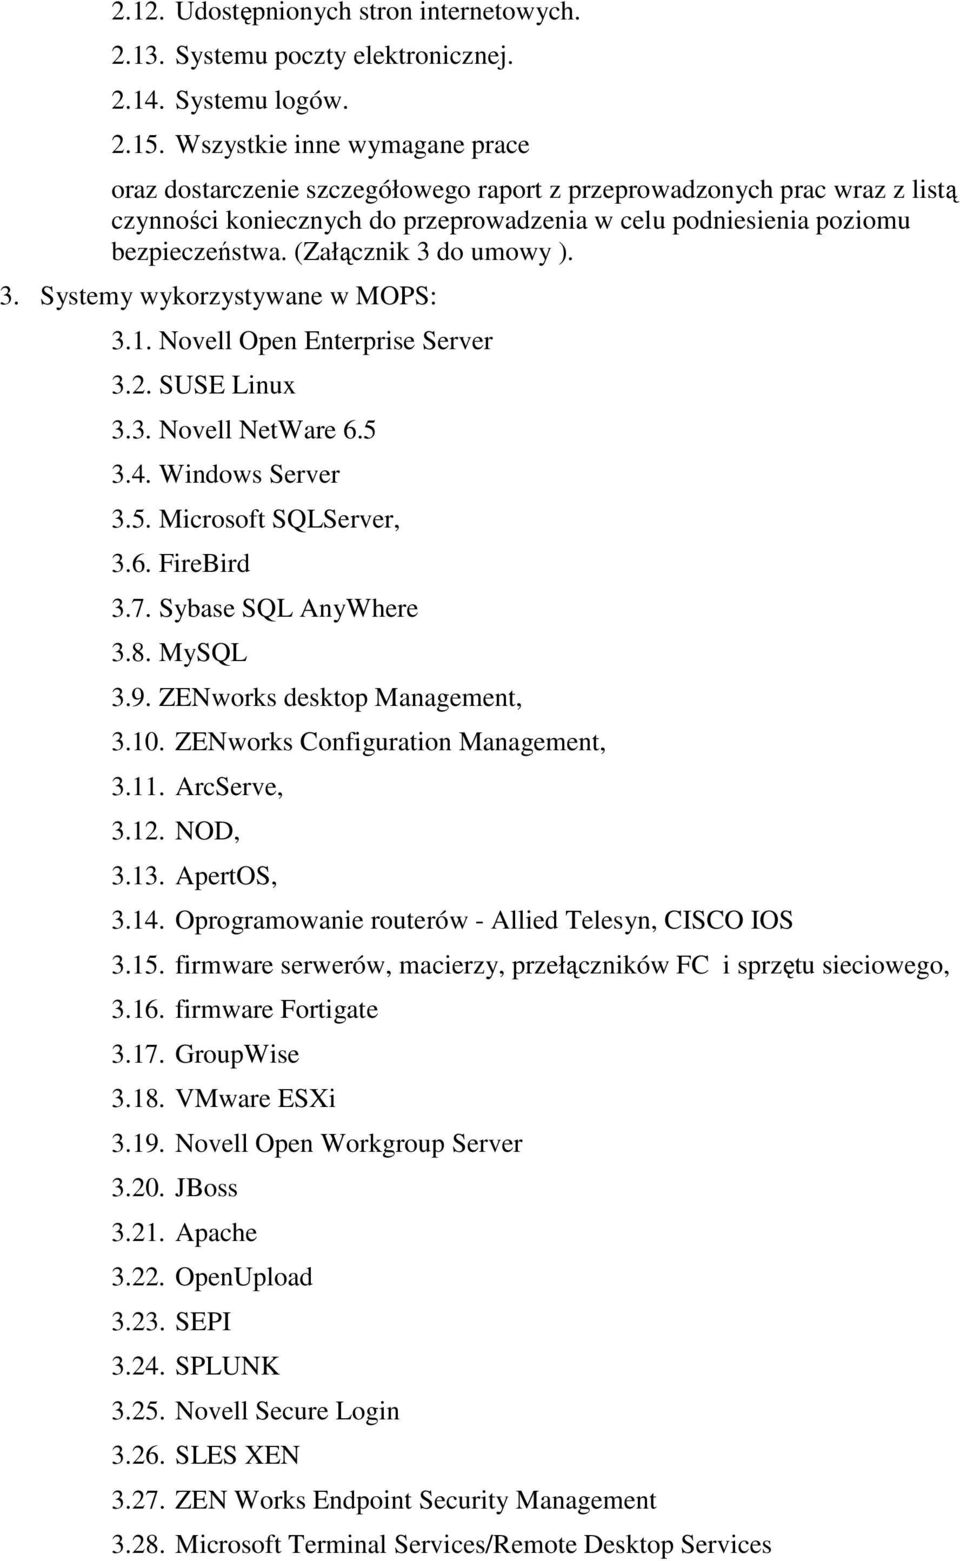 (Załącznik 3 do umowy ). 3. Systemy wykorzystywane w MOPS: 3.1. Novell Open Enterprise Server 3.2. SUSE Linux 3.3. Novell NetWare 6.5 3.4. Windows Server 3.5. Microsoft SQLServer, 3.6. FireBird 3.7.